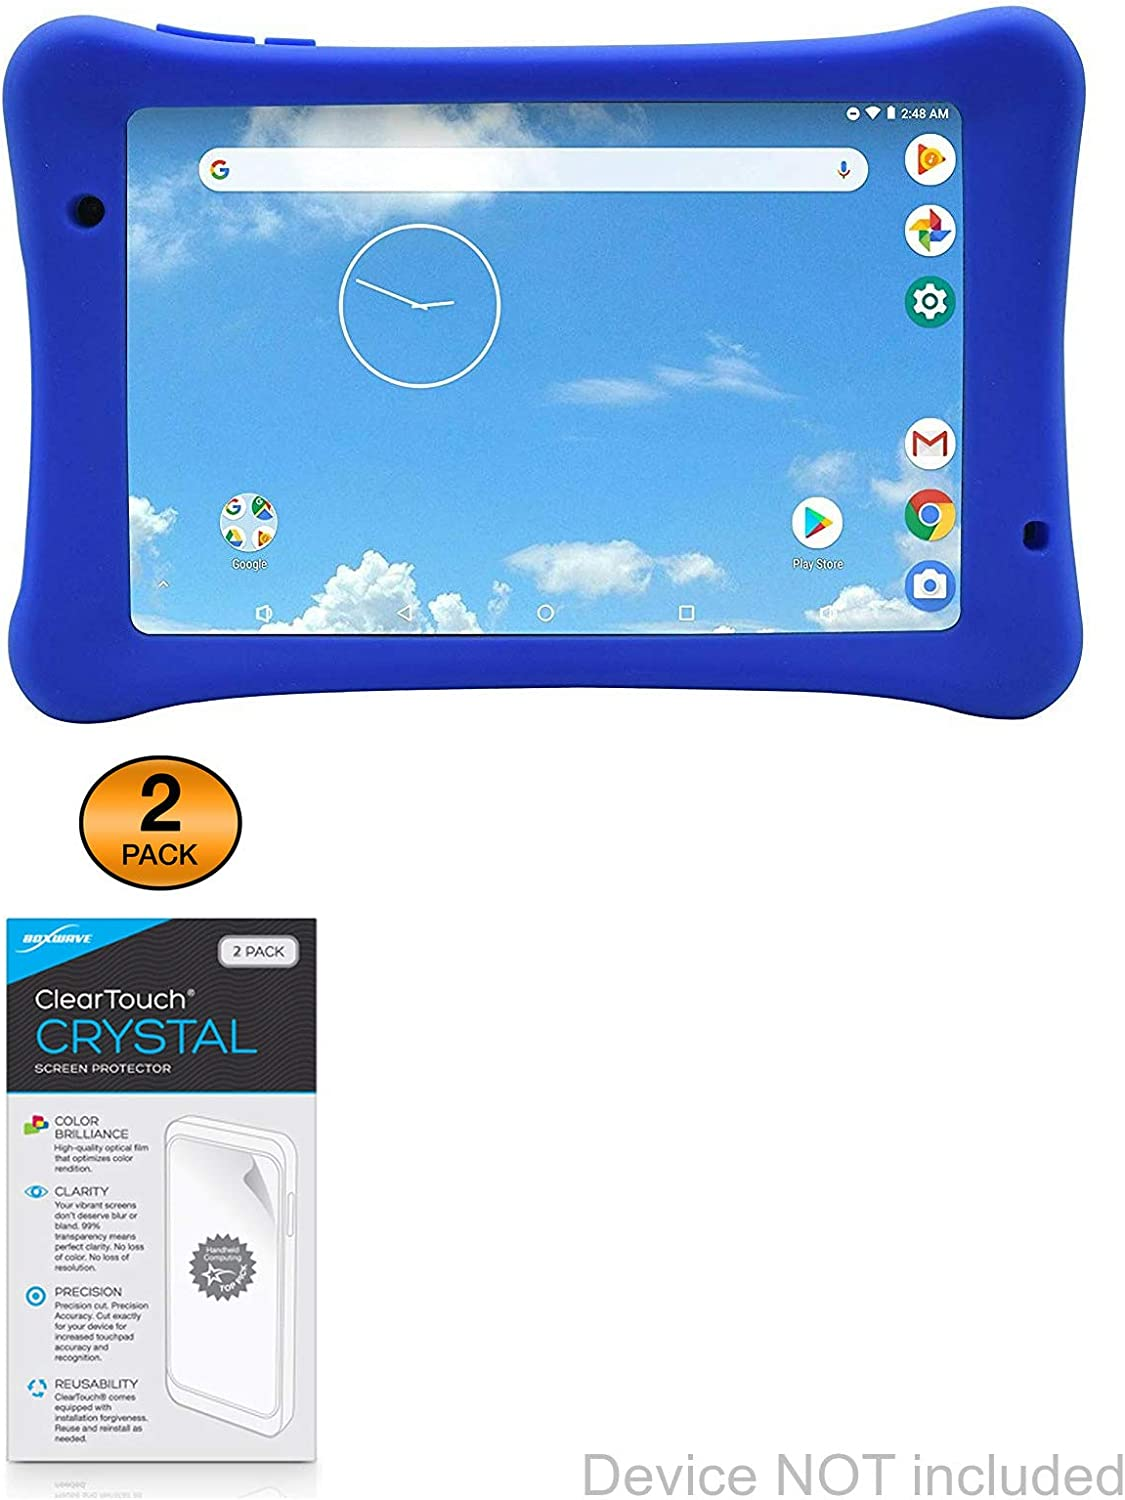 STV-230-4KH ClearTouch Crystal Shields from Scratches for Elvid STV-280-4KH Elvid STV-280-4KH Screen Protector 2-Pack BoxWave HD Film Skin